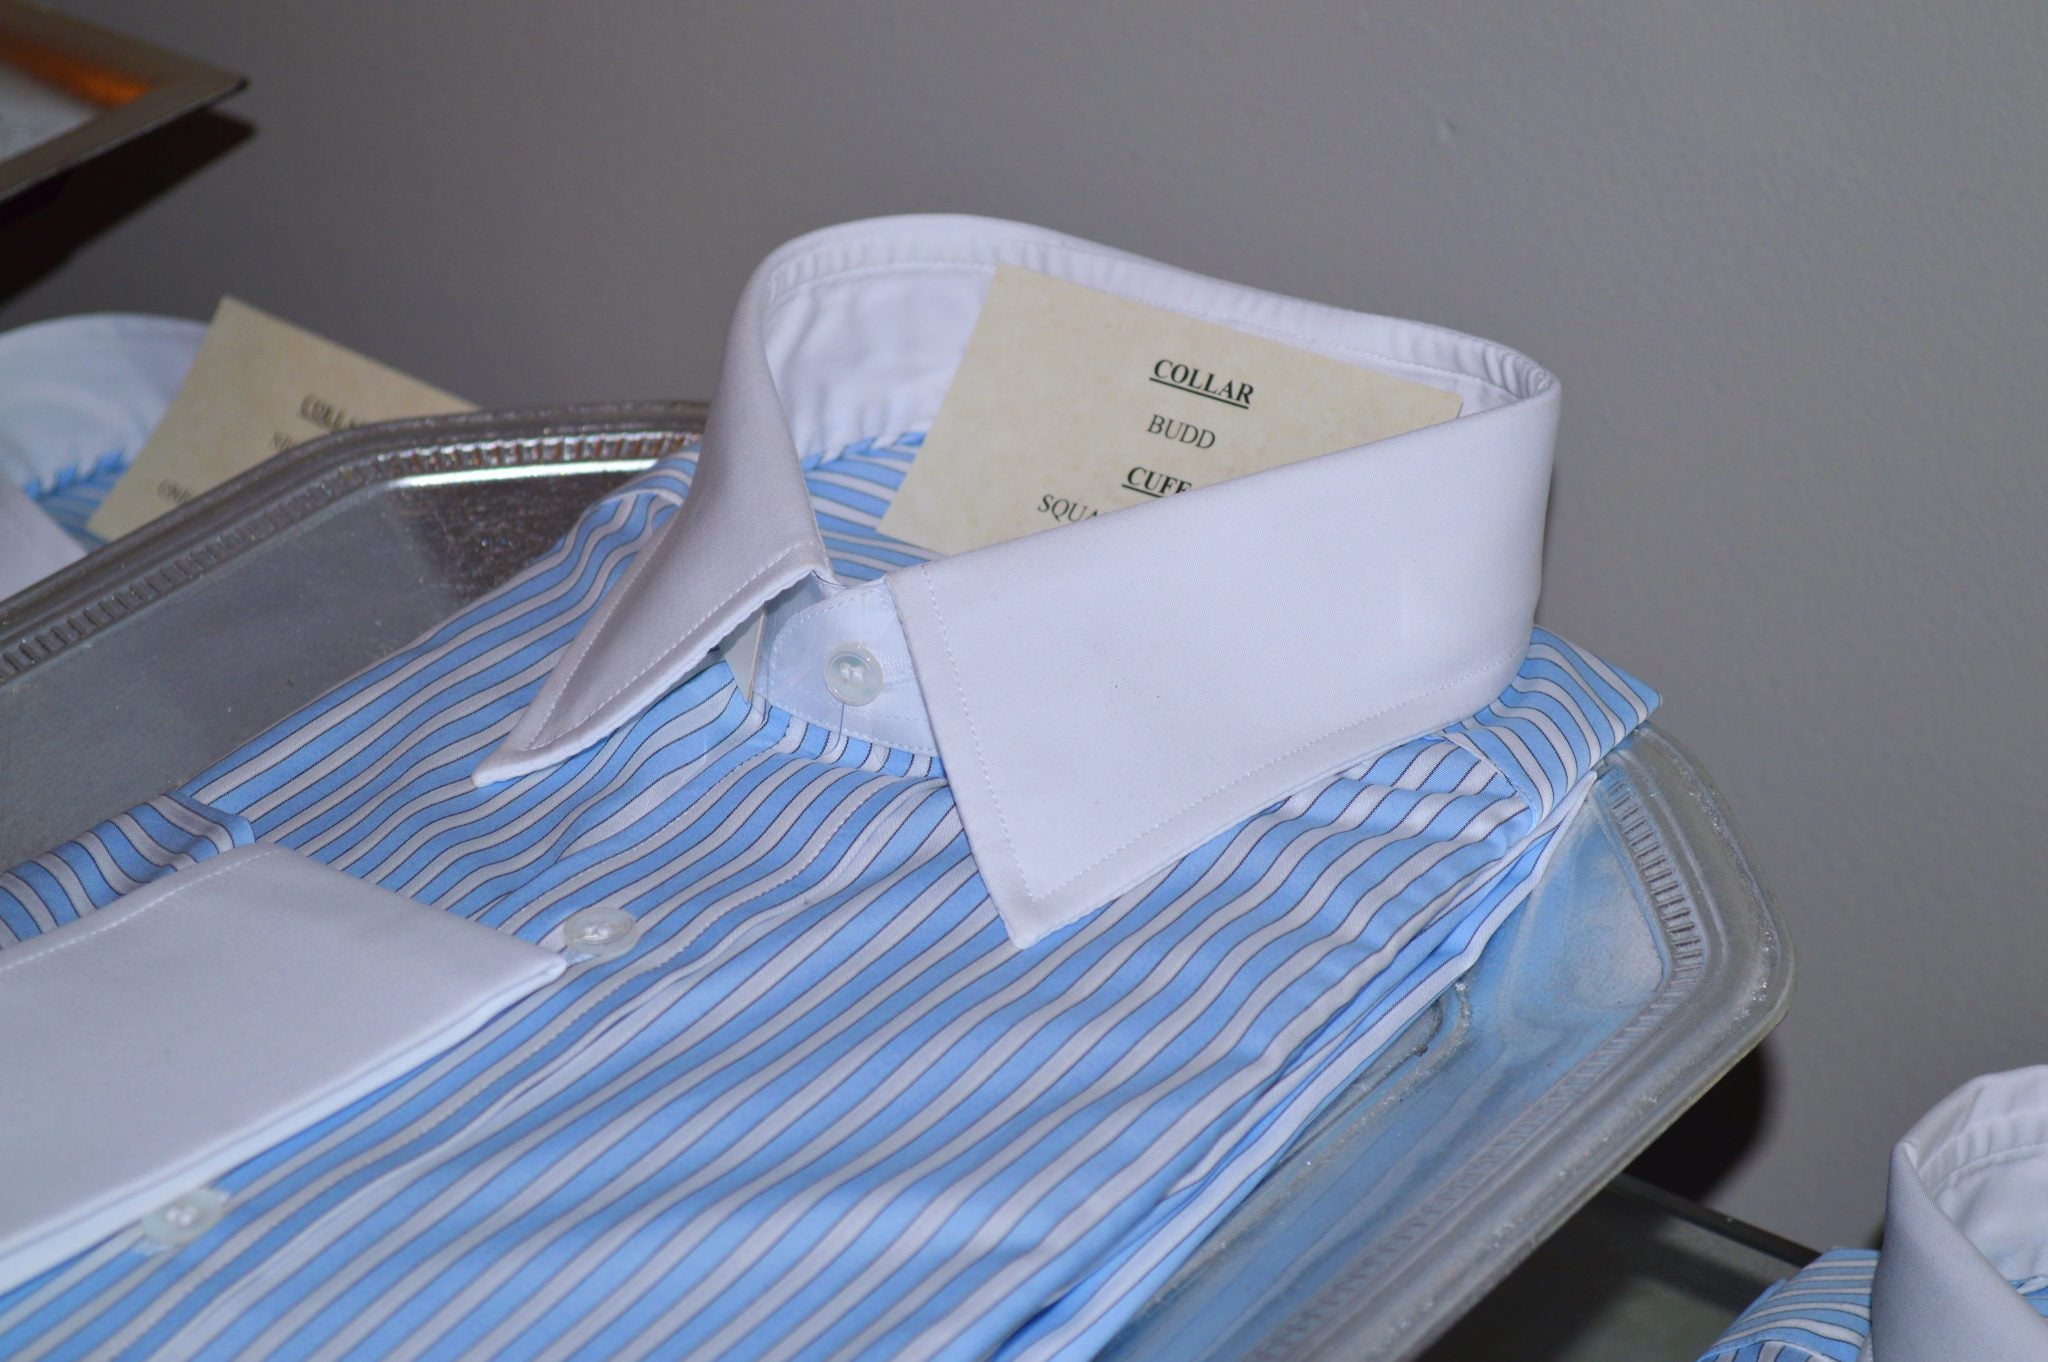 collar and cuff selection custom shirts